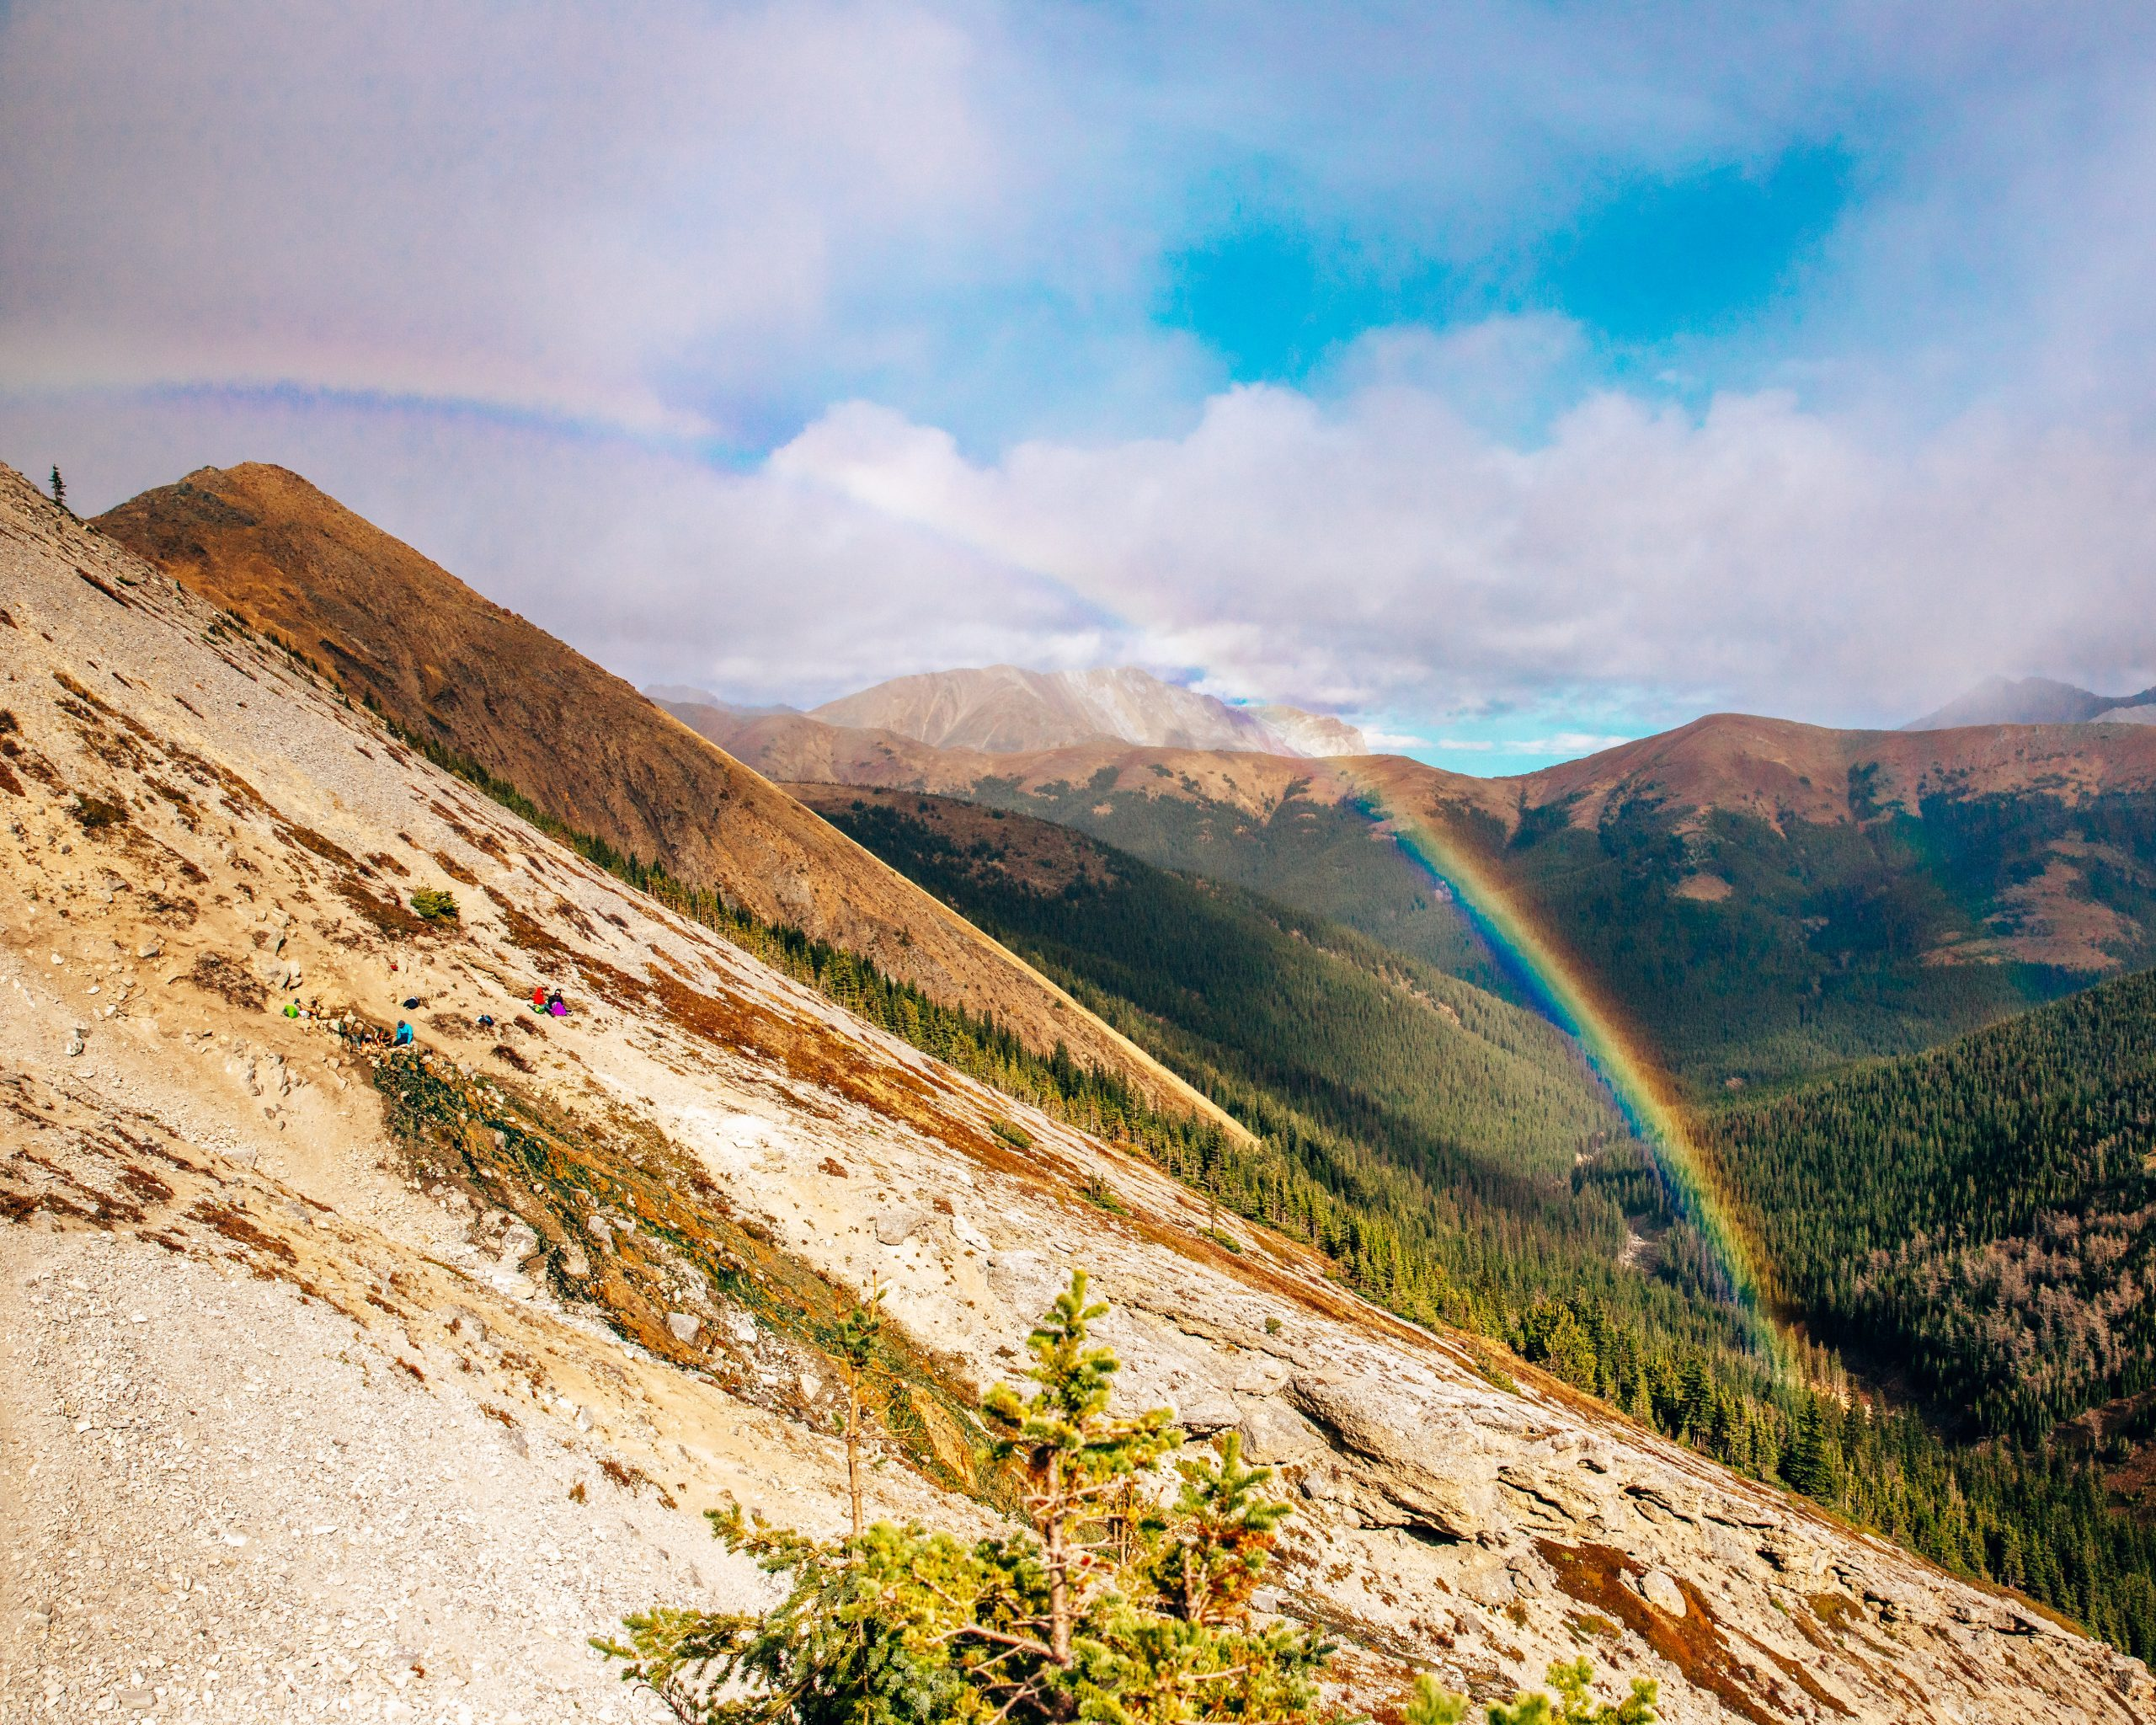 View of Rainbow and Mist Mountain Hot Springs on Mist Mountain, Kananskis